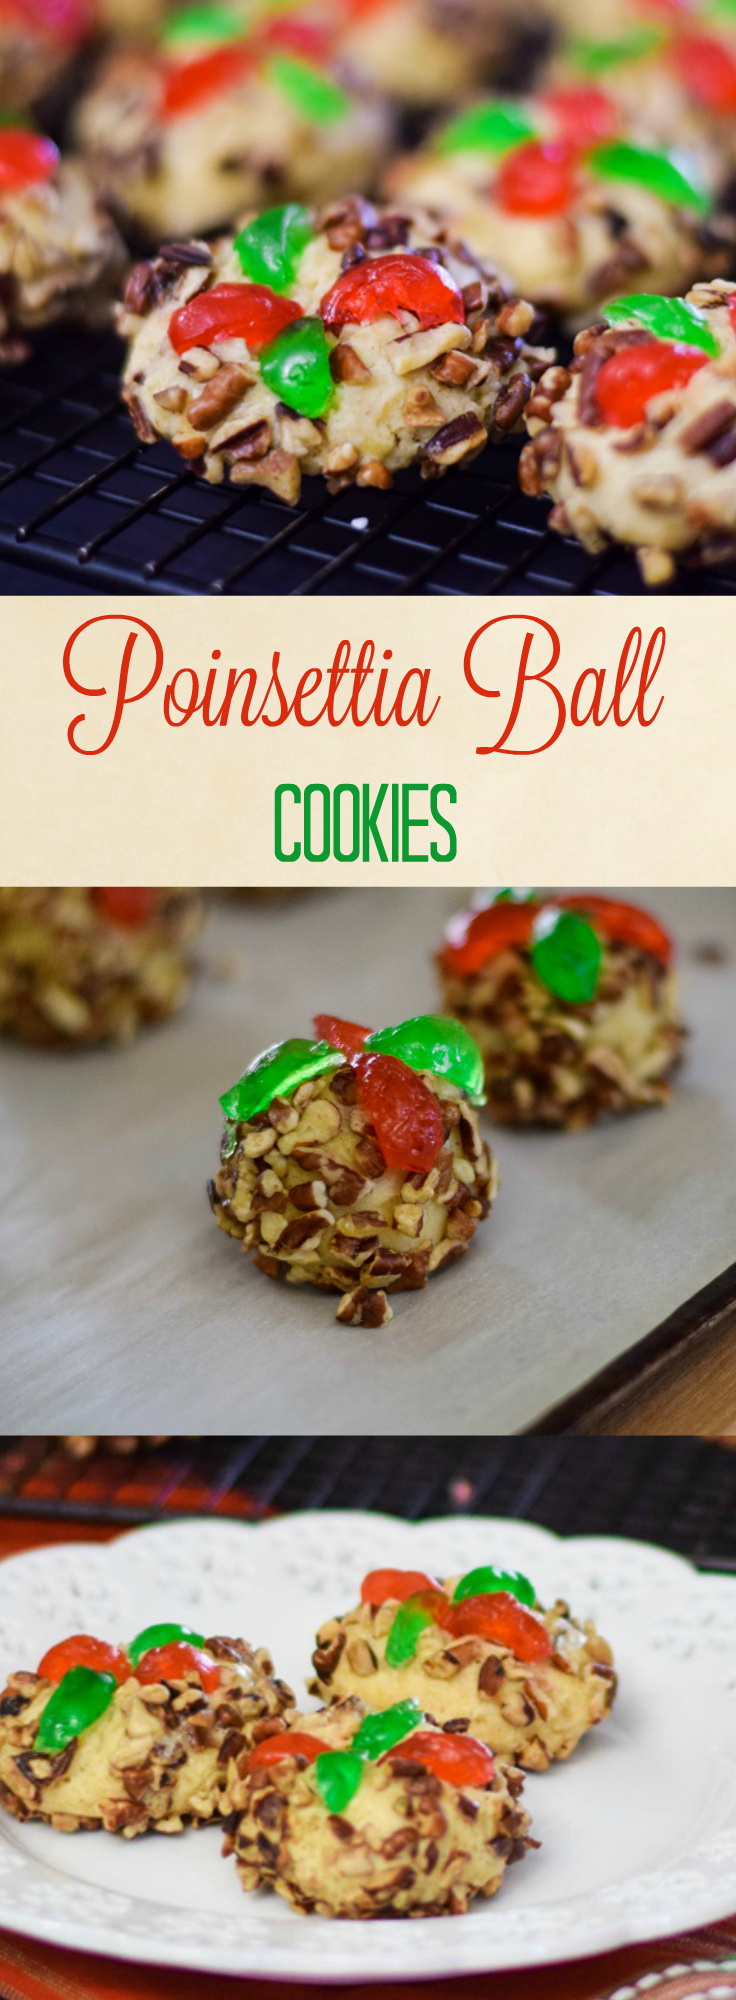 Poinsettia Ball Cookies Pinterest